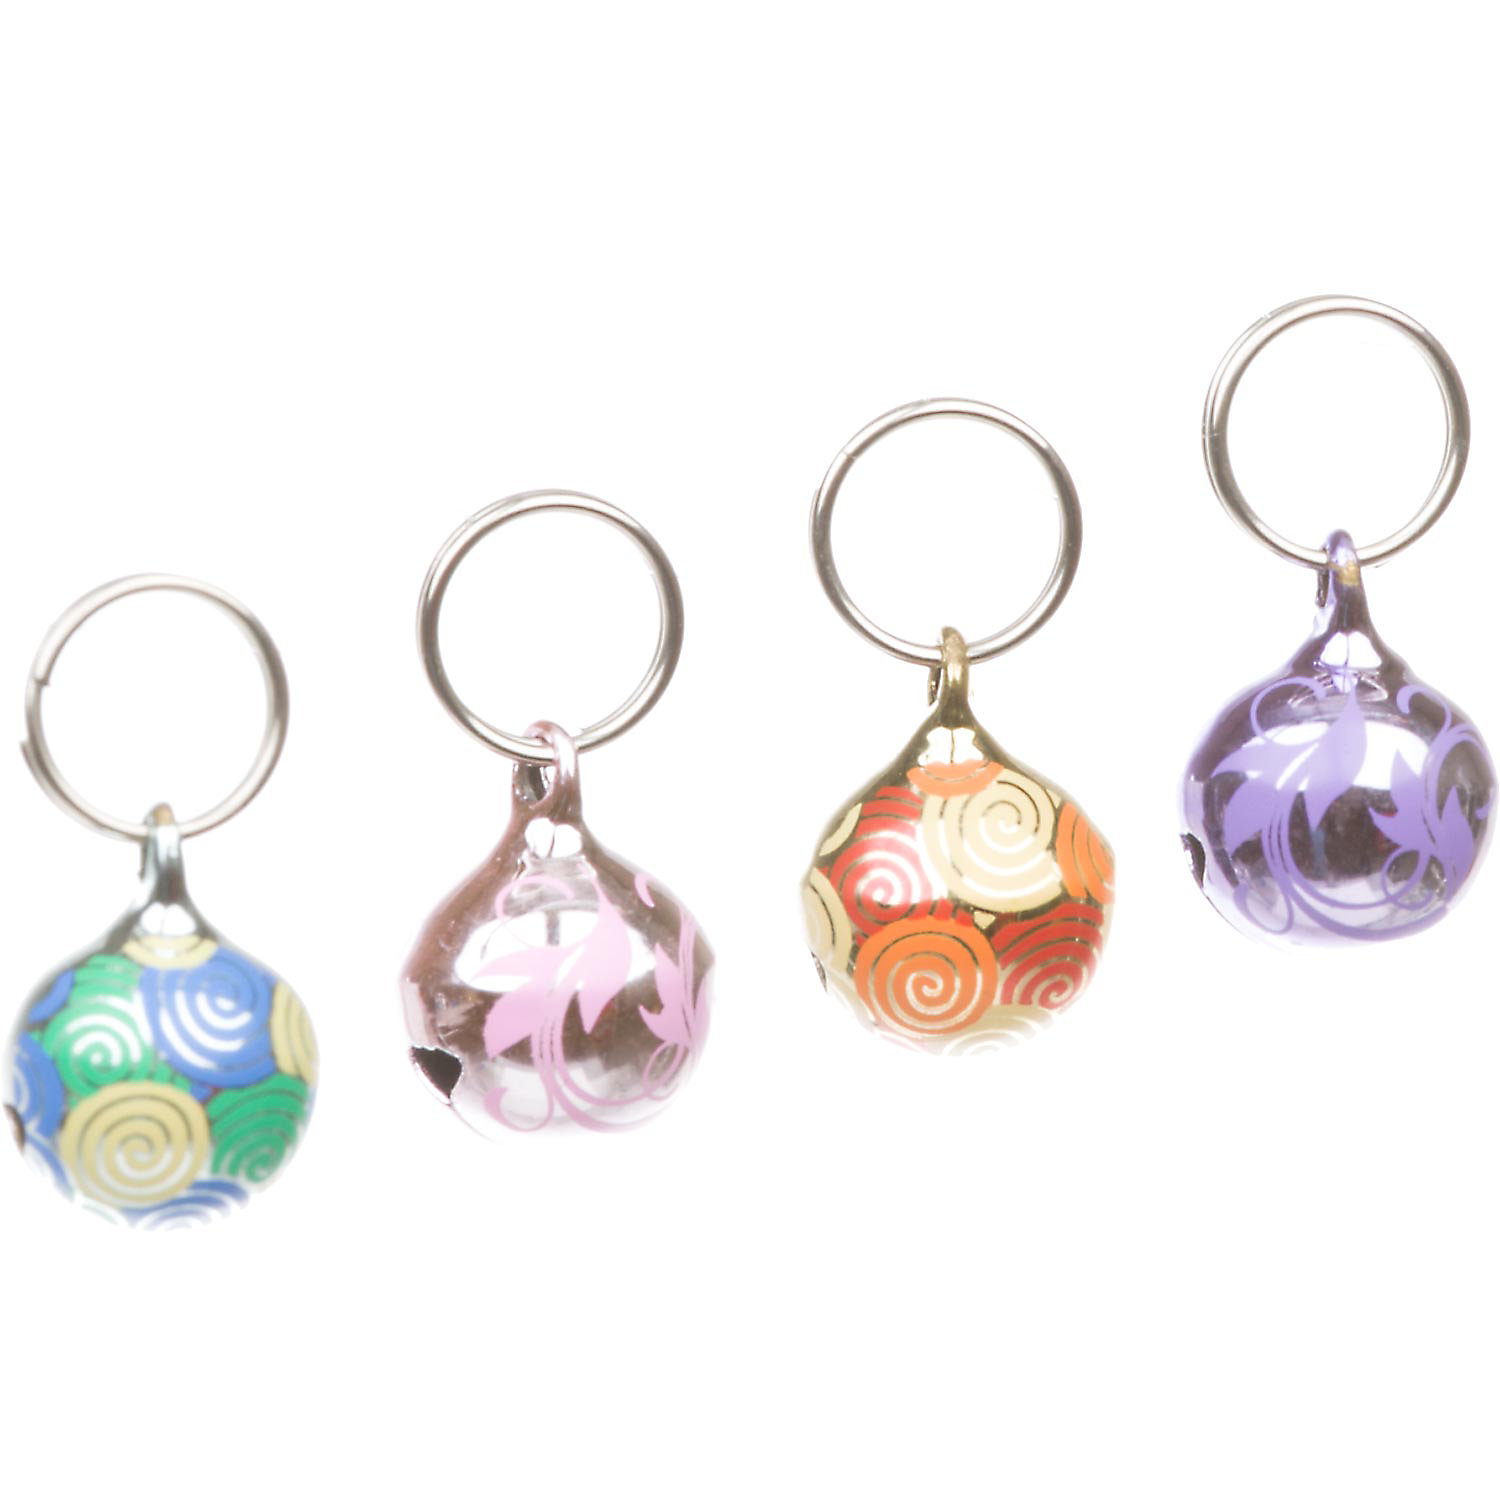 Petco Patterned Accessory Bells For Cat Collars